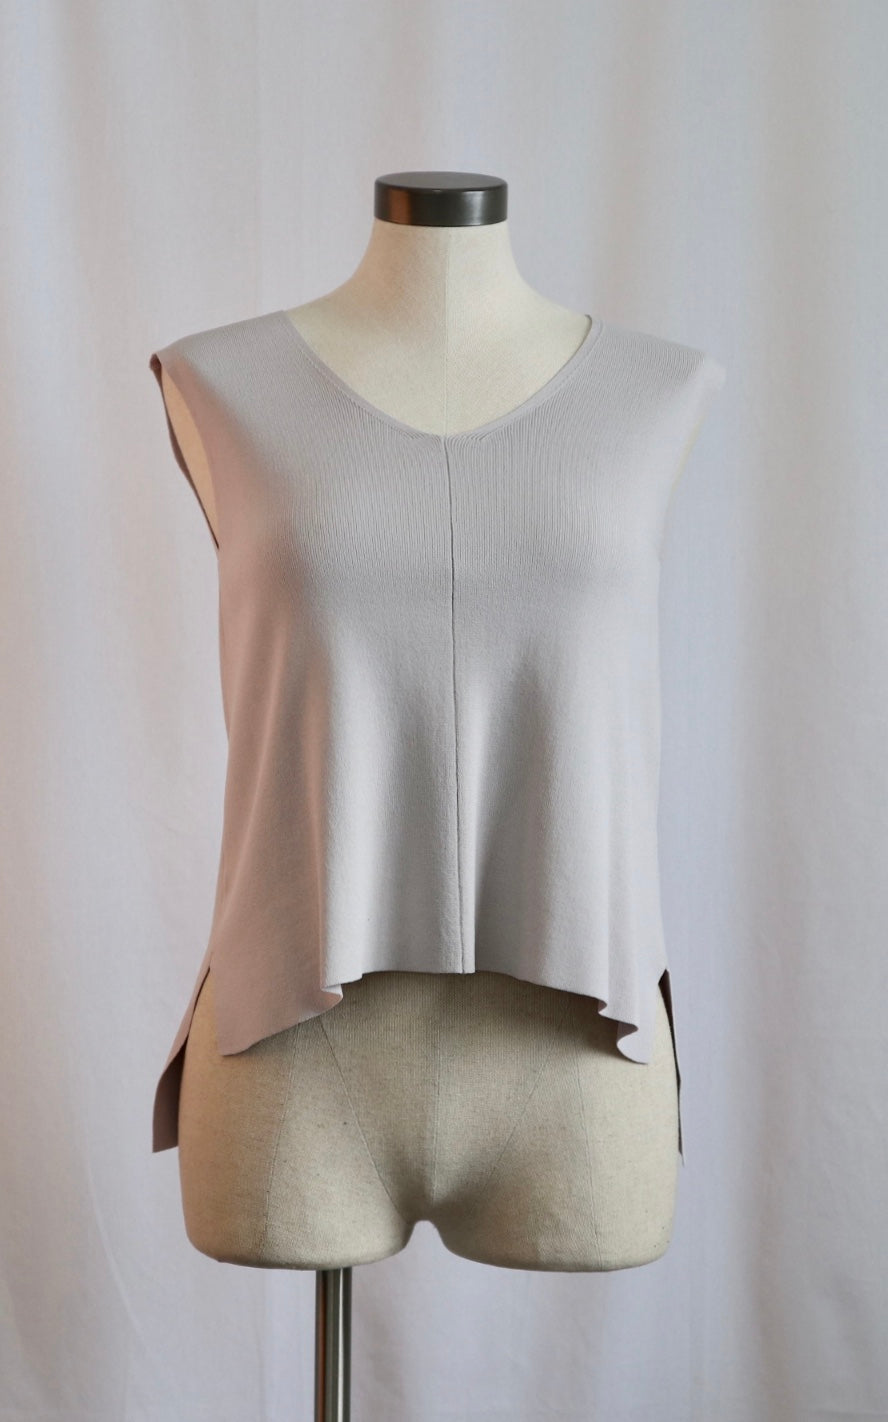 Luna Sleeveless Top (30% 0ff at checkout)